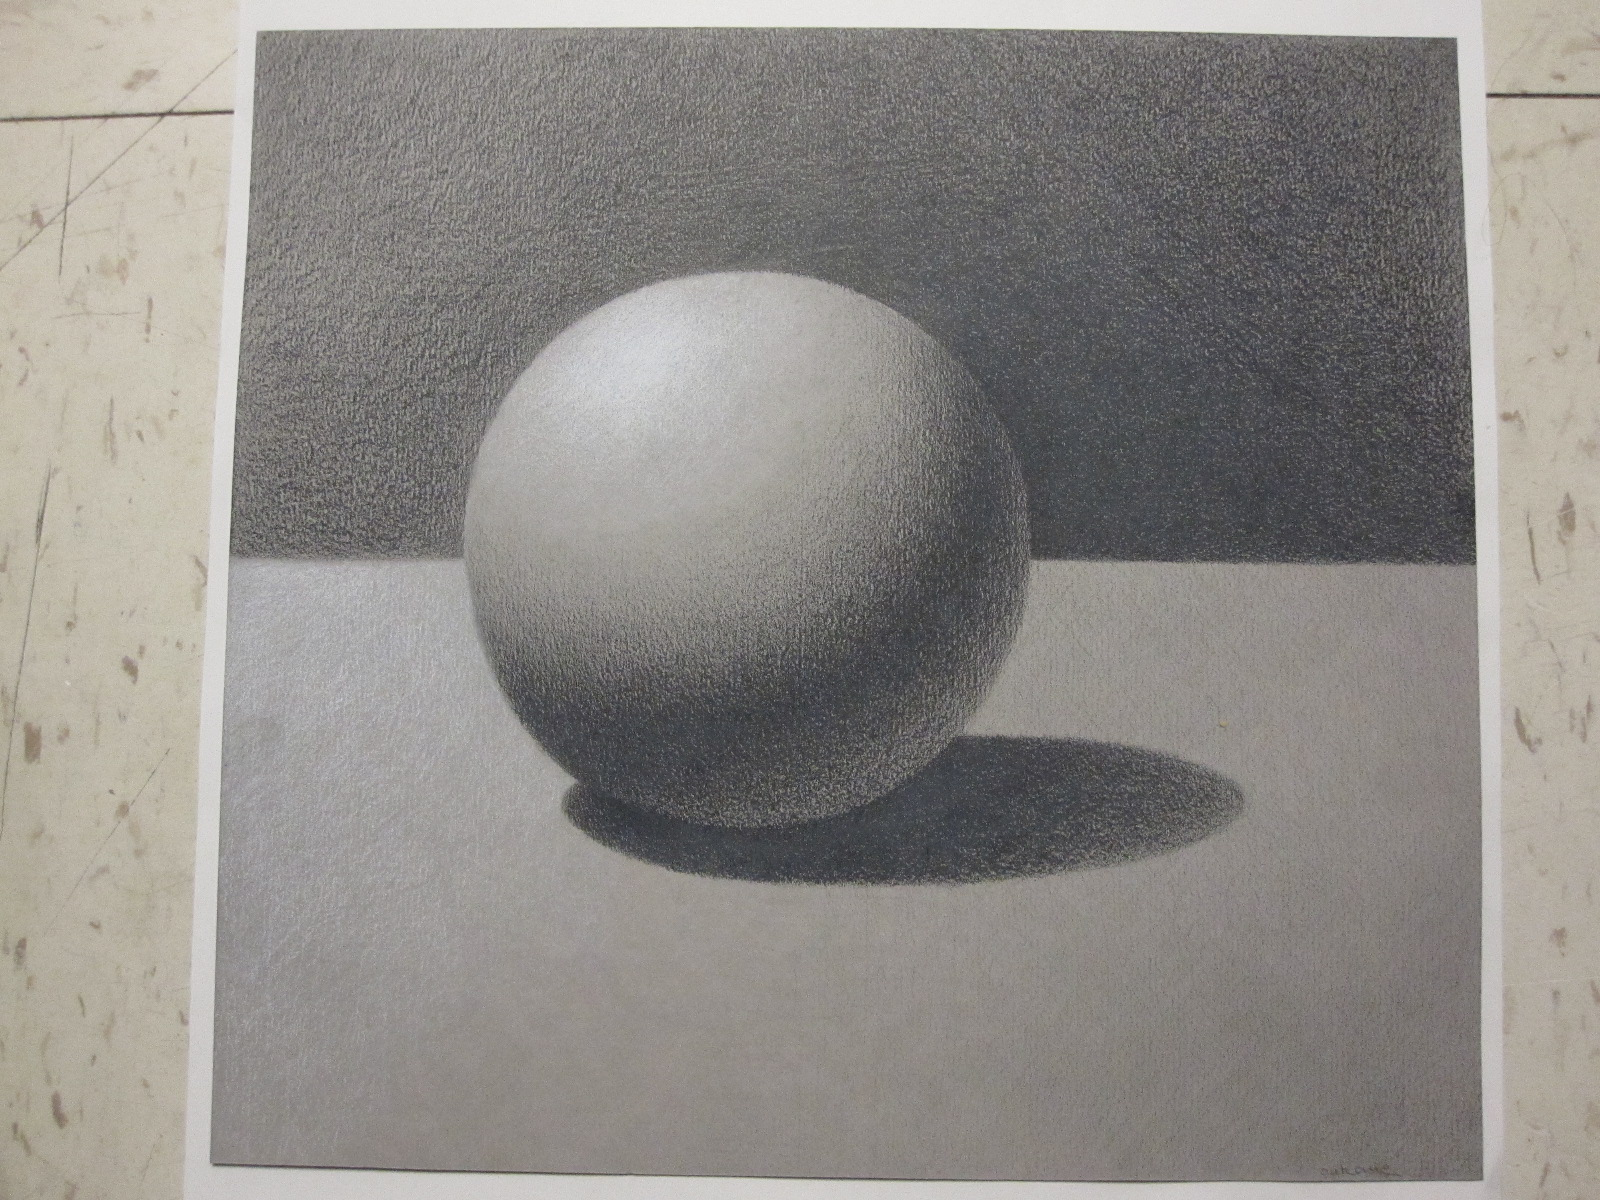 Drawn sphere White Sphere hand paper grey